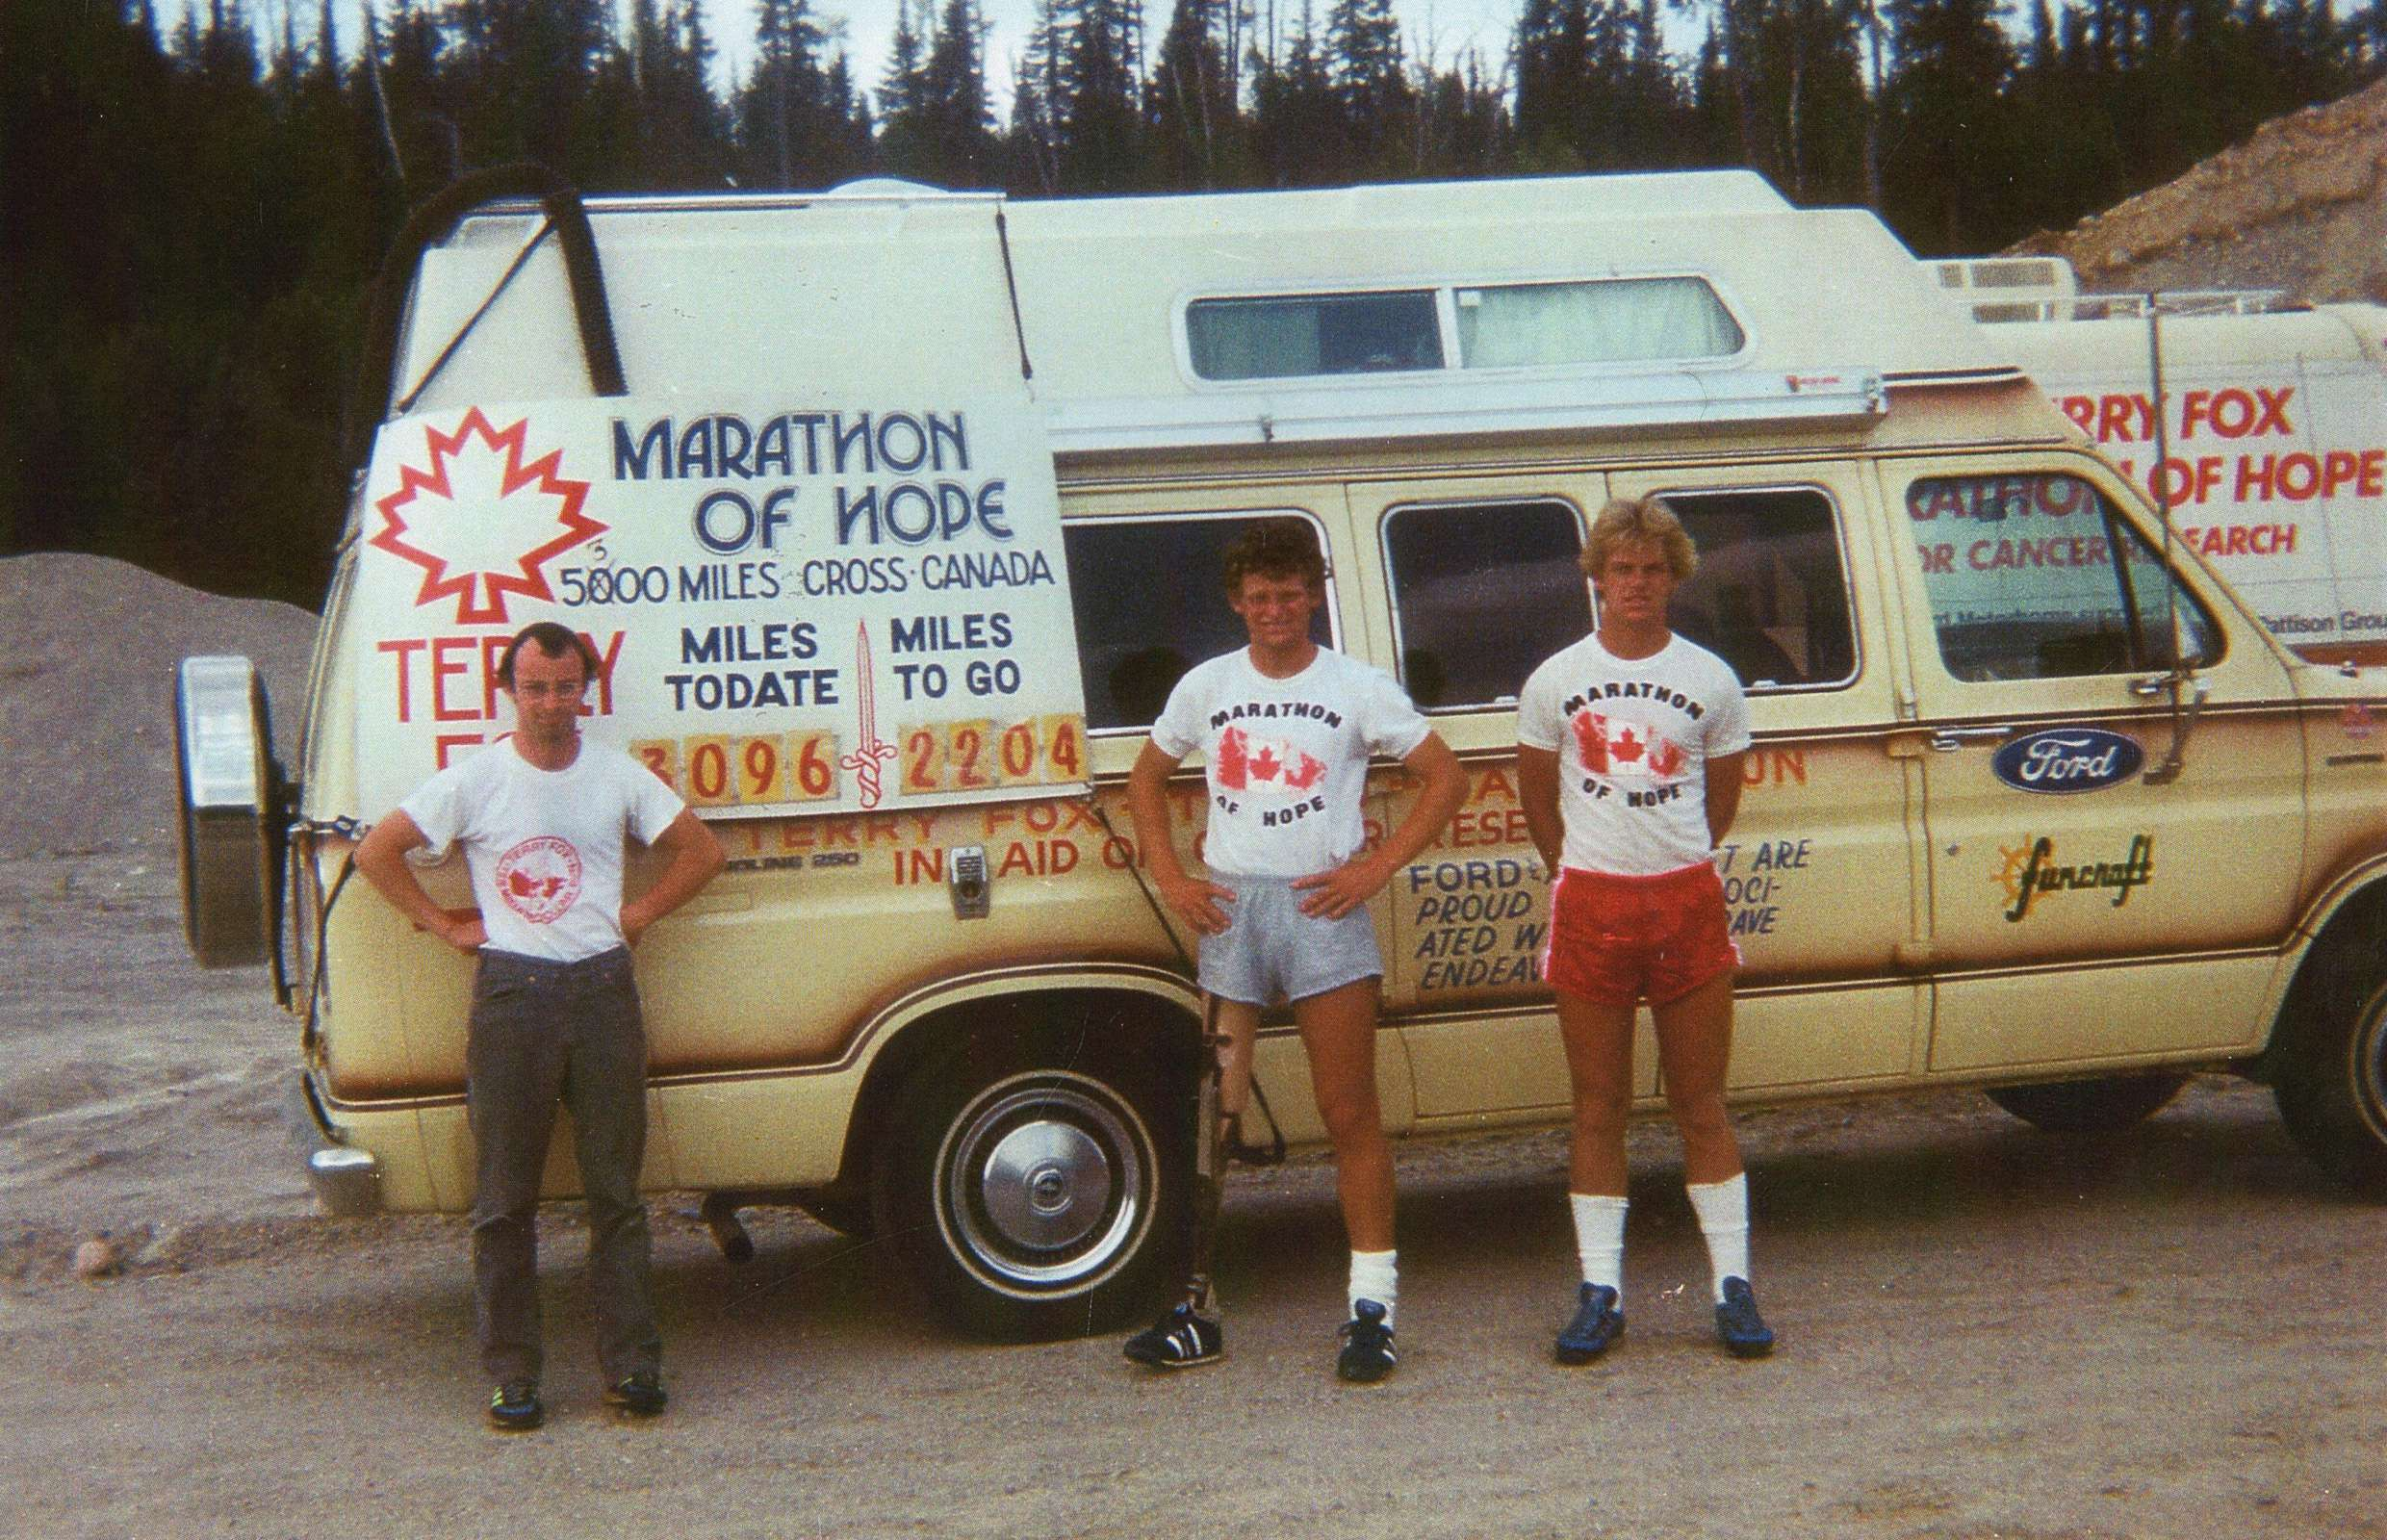 Terry Fox and the Team